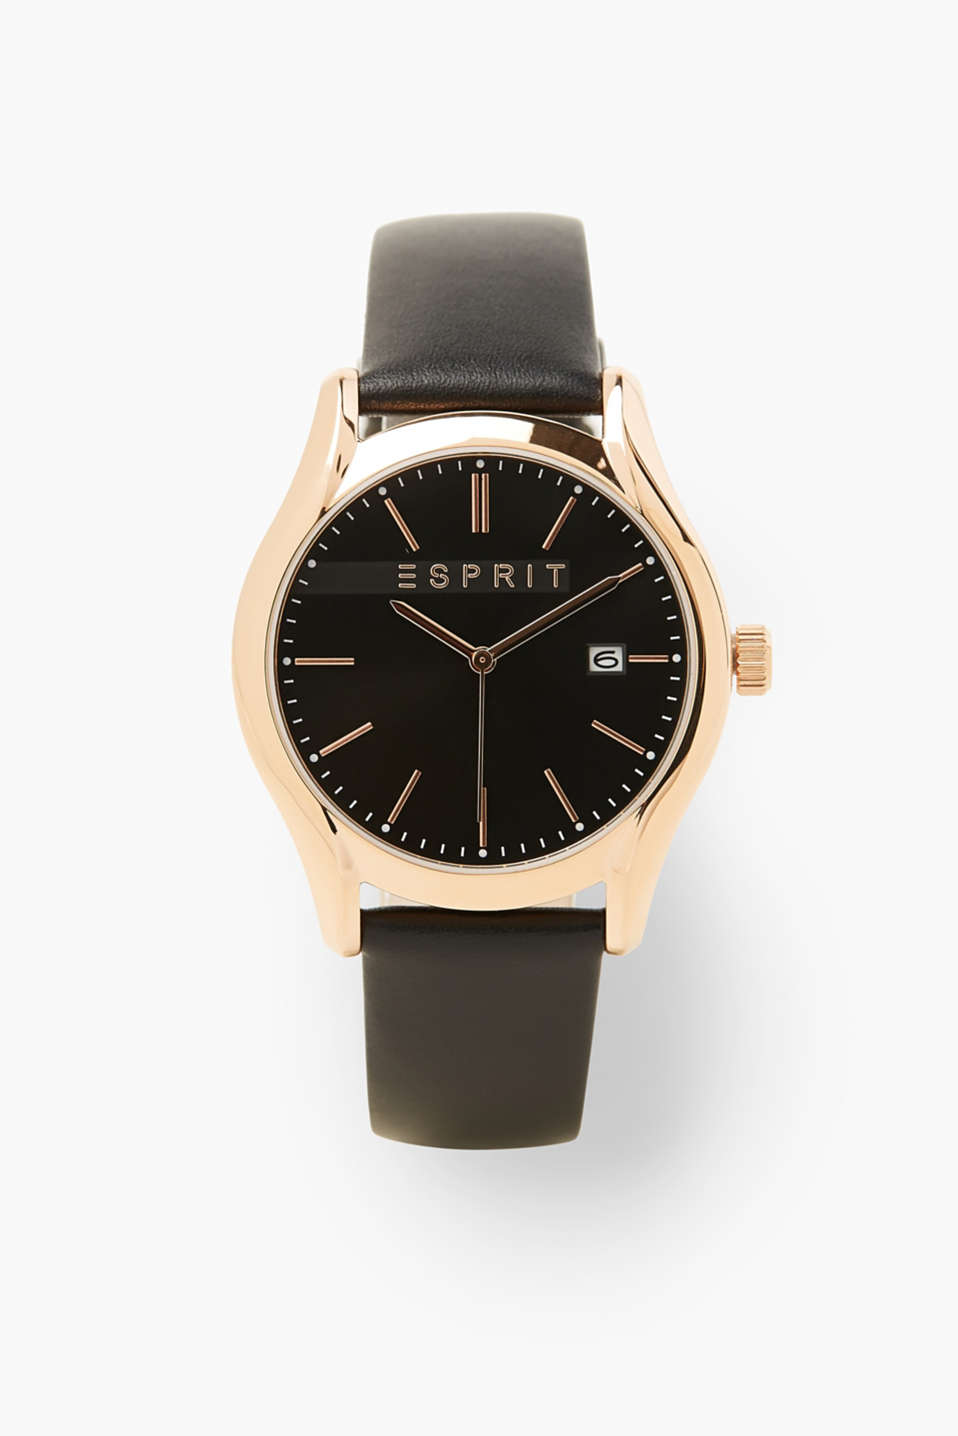 Esprit - Stainless steel watch + leather wrist strap